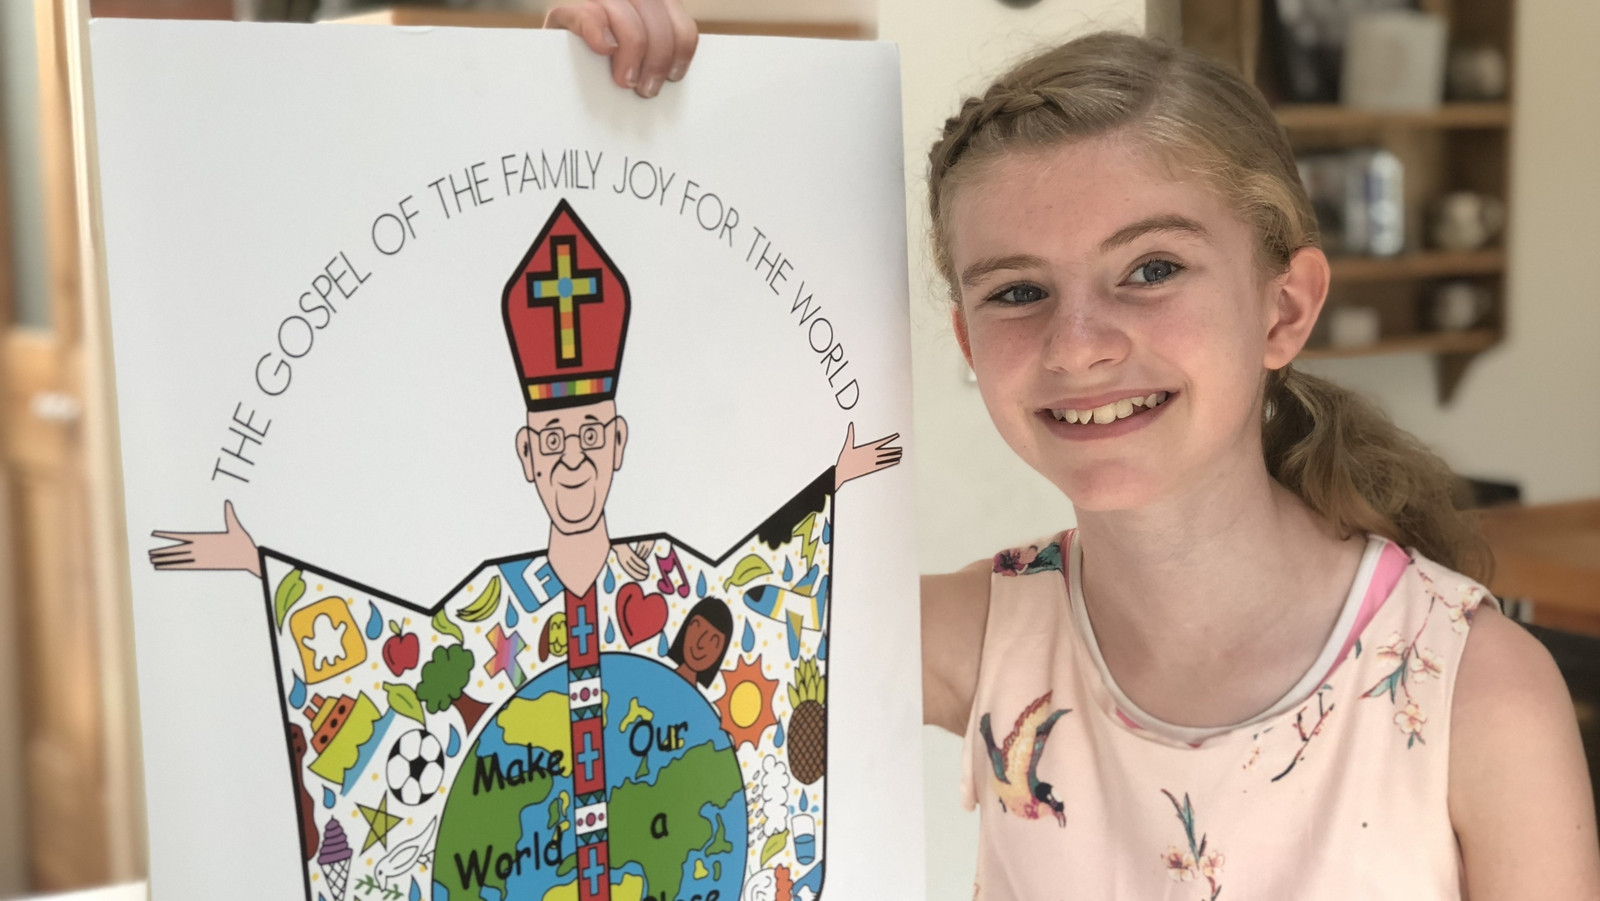 Image - Jane Boland, 11, from Nenagh, Co Tipperary